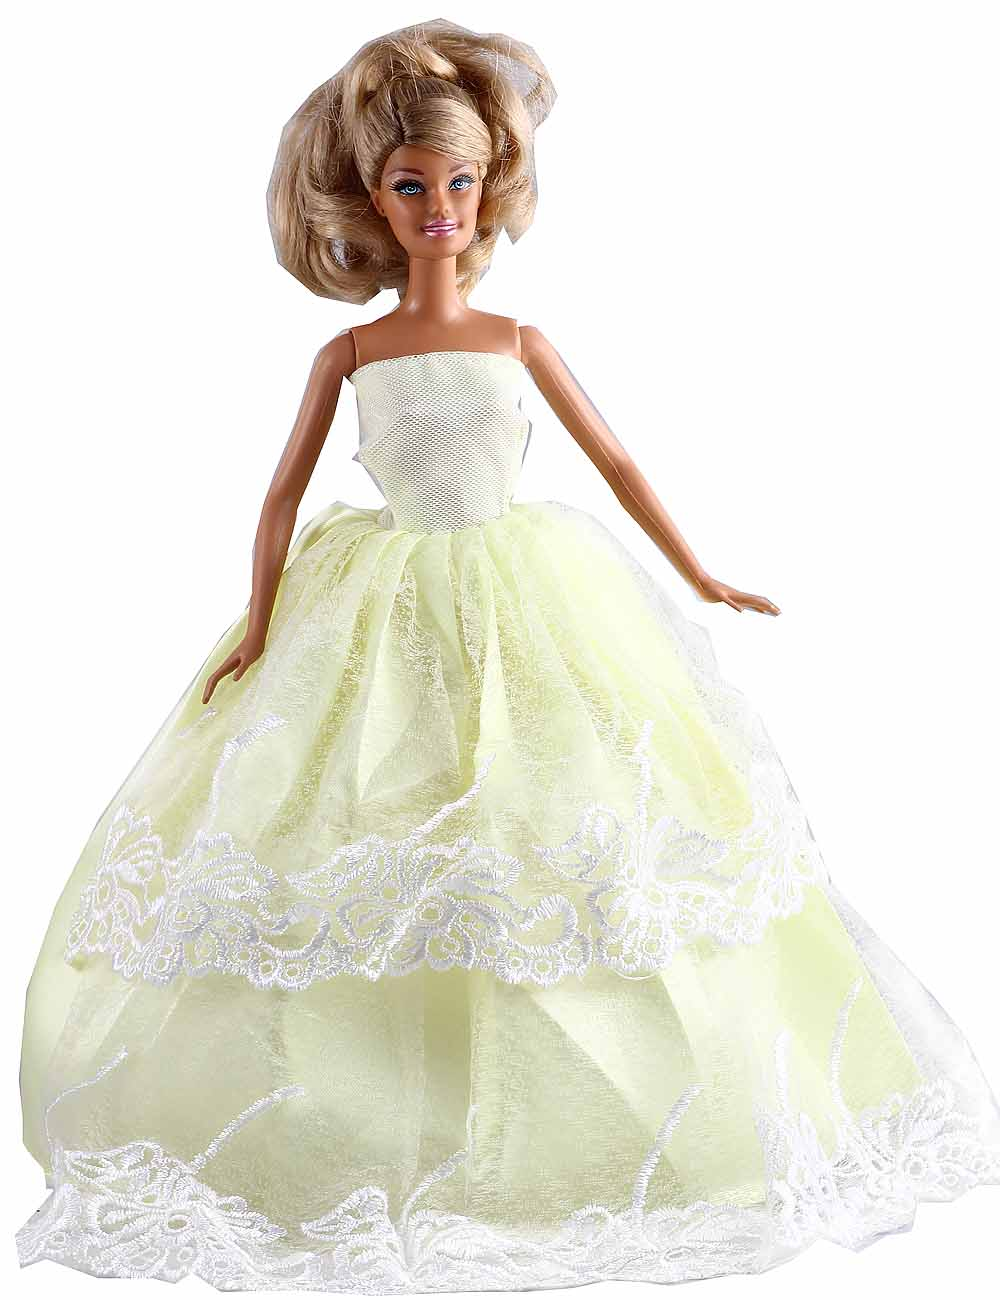 "New Fashion Handmade Two Tier Yellow Lace Dress/Party Dress Clothes Gown For 11"" Barbie Doll D1110(China (Mainland))"